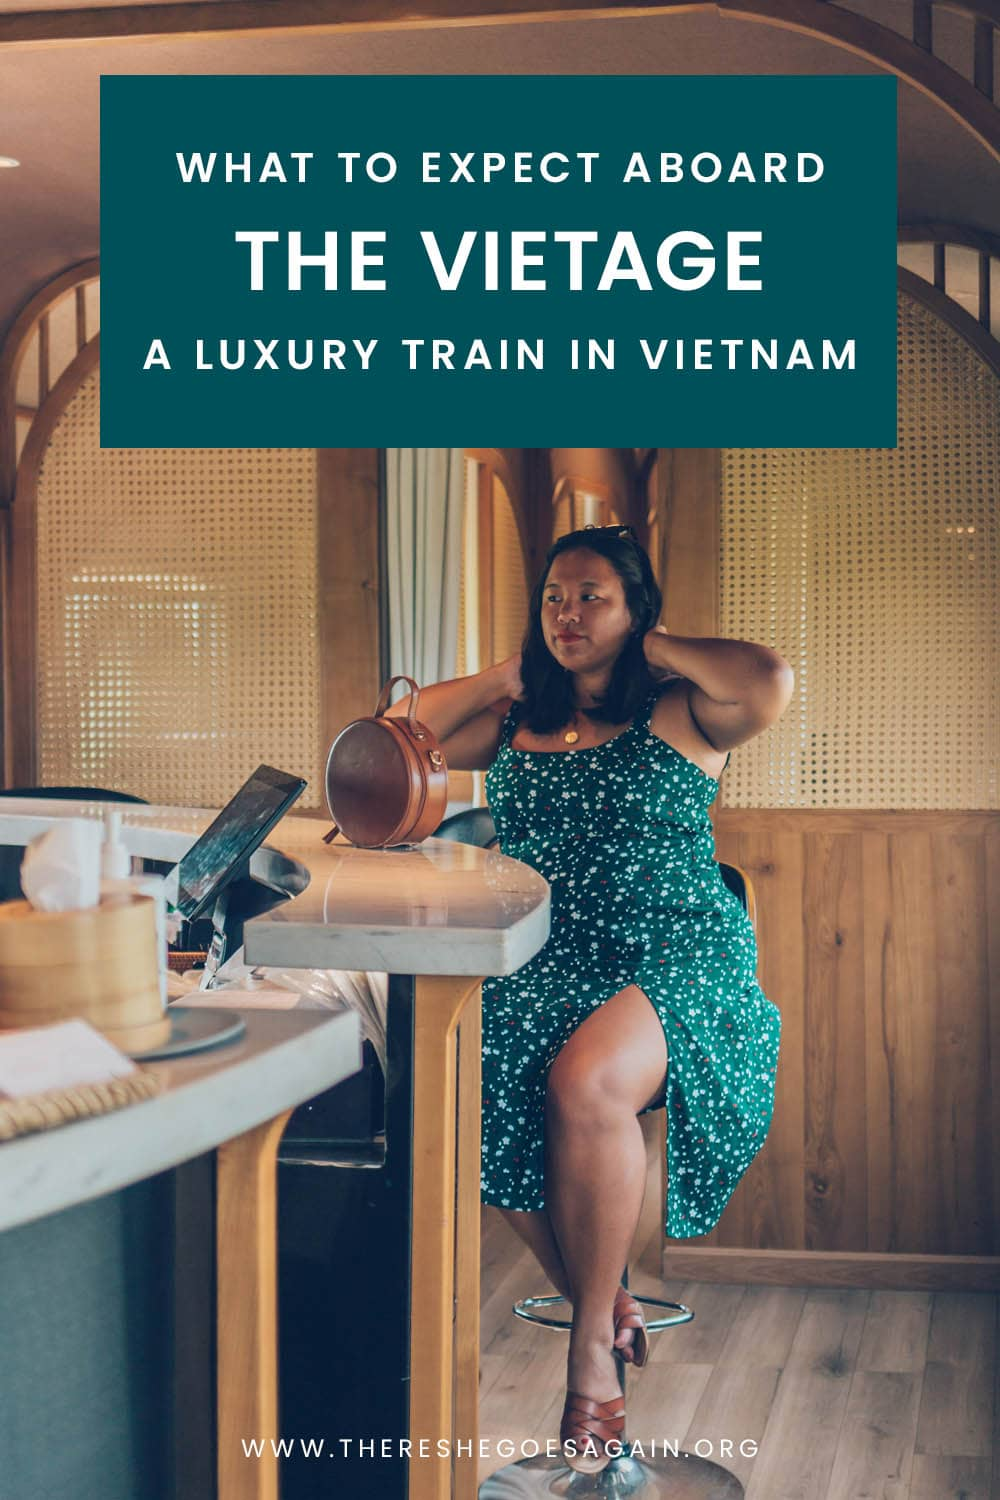 What it's like riding the Vietage, a luxury train ride in Vietnam